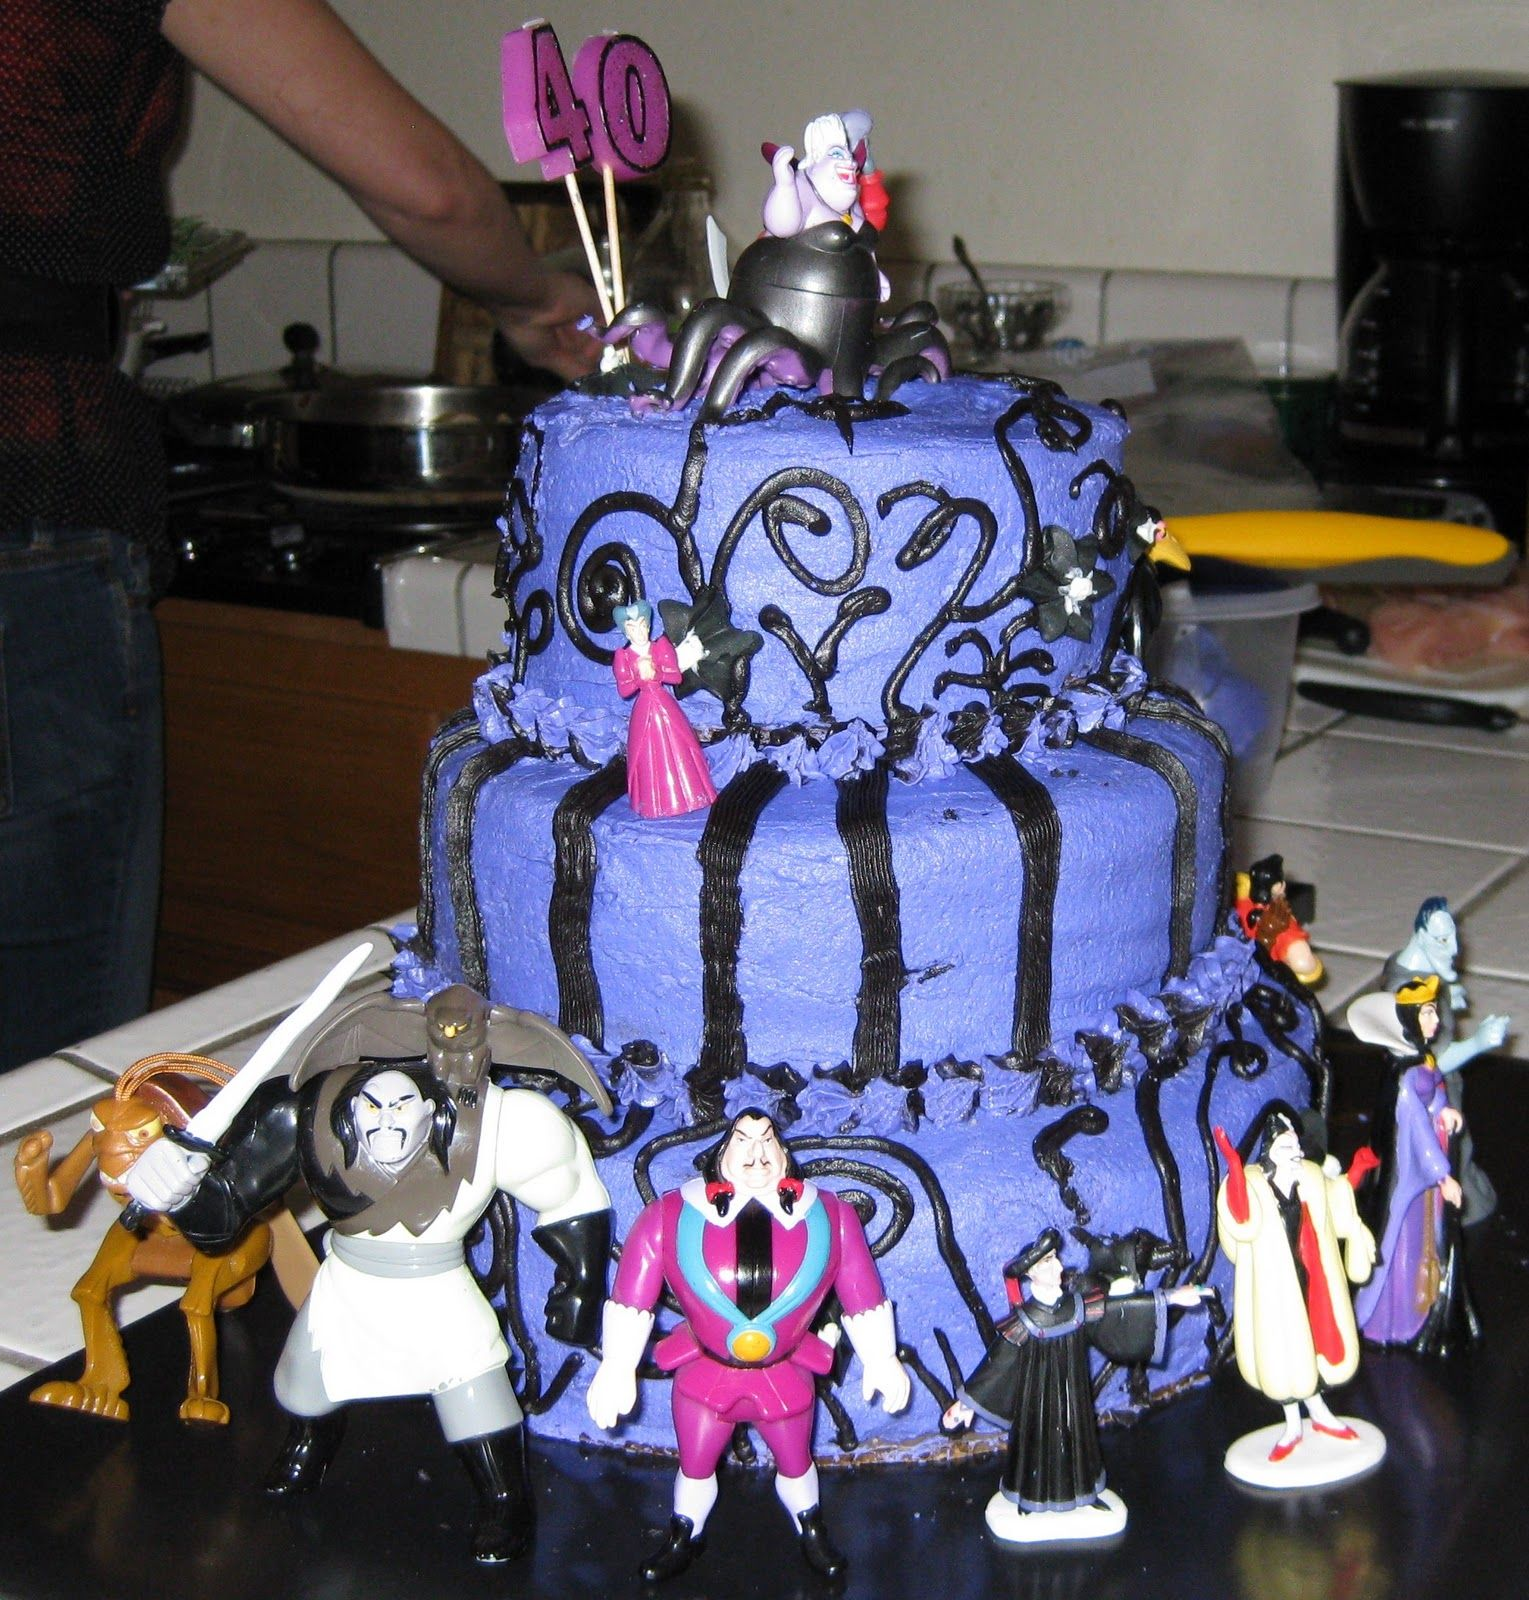 Disney Villains Cake Things I Love in Cake Form Pinterest